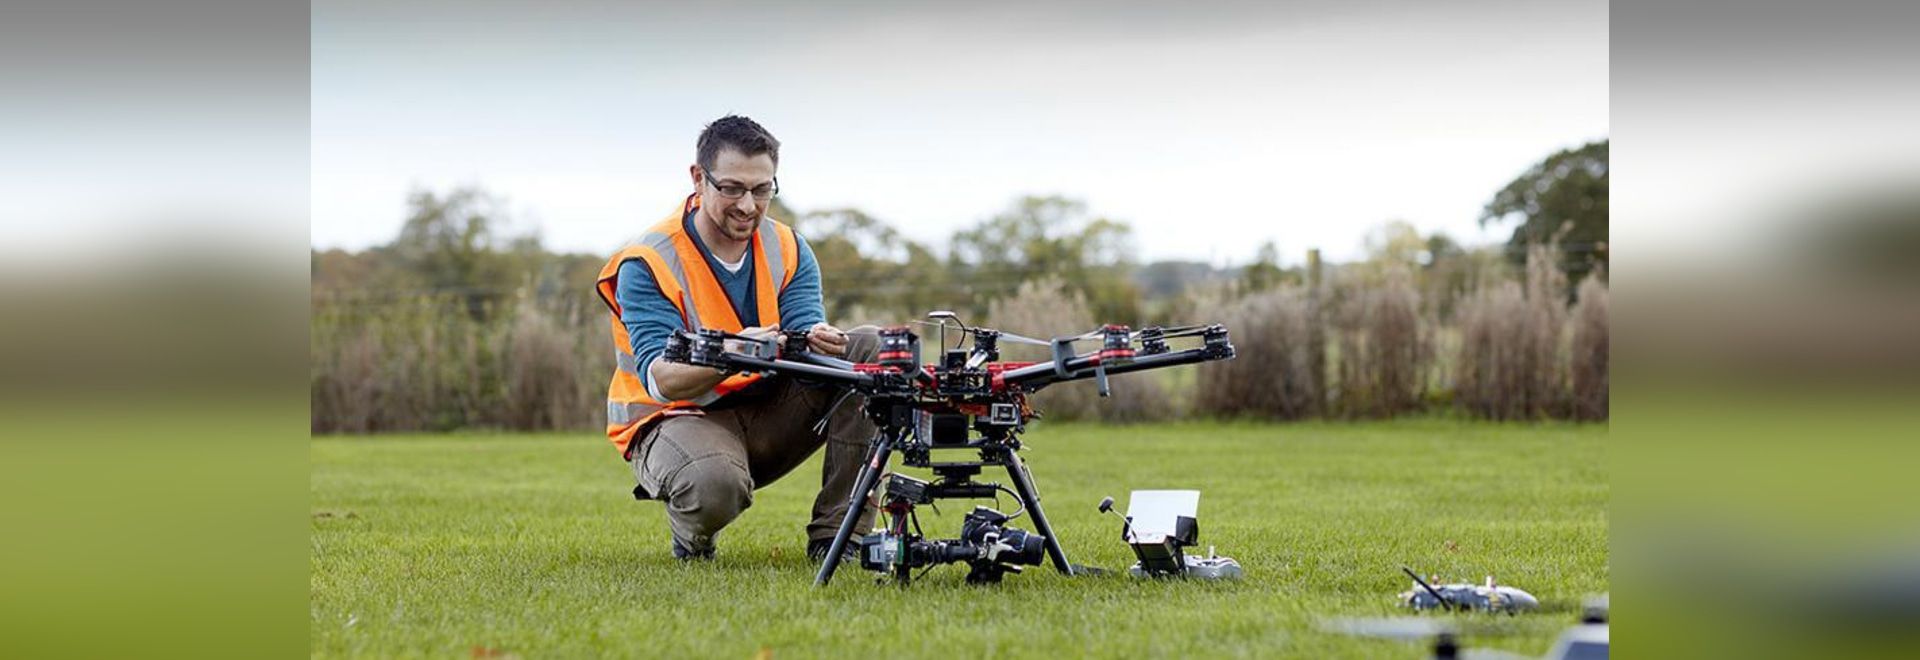 A Field Farmed Only by Drones